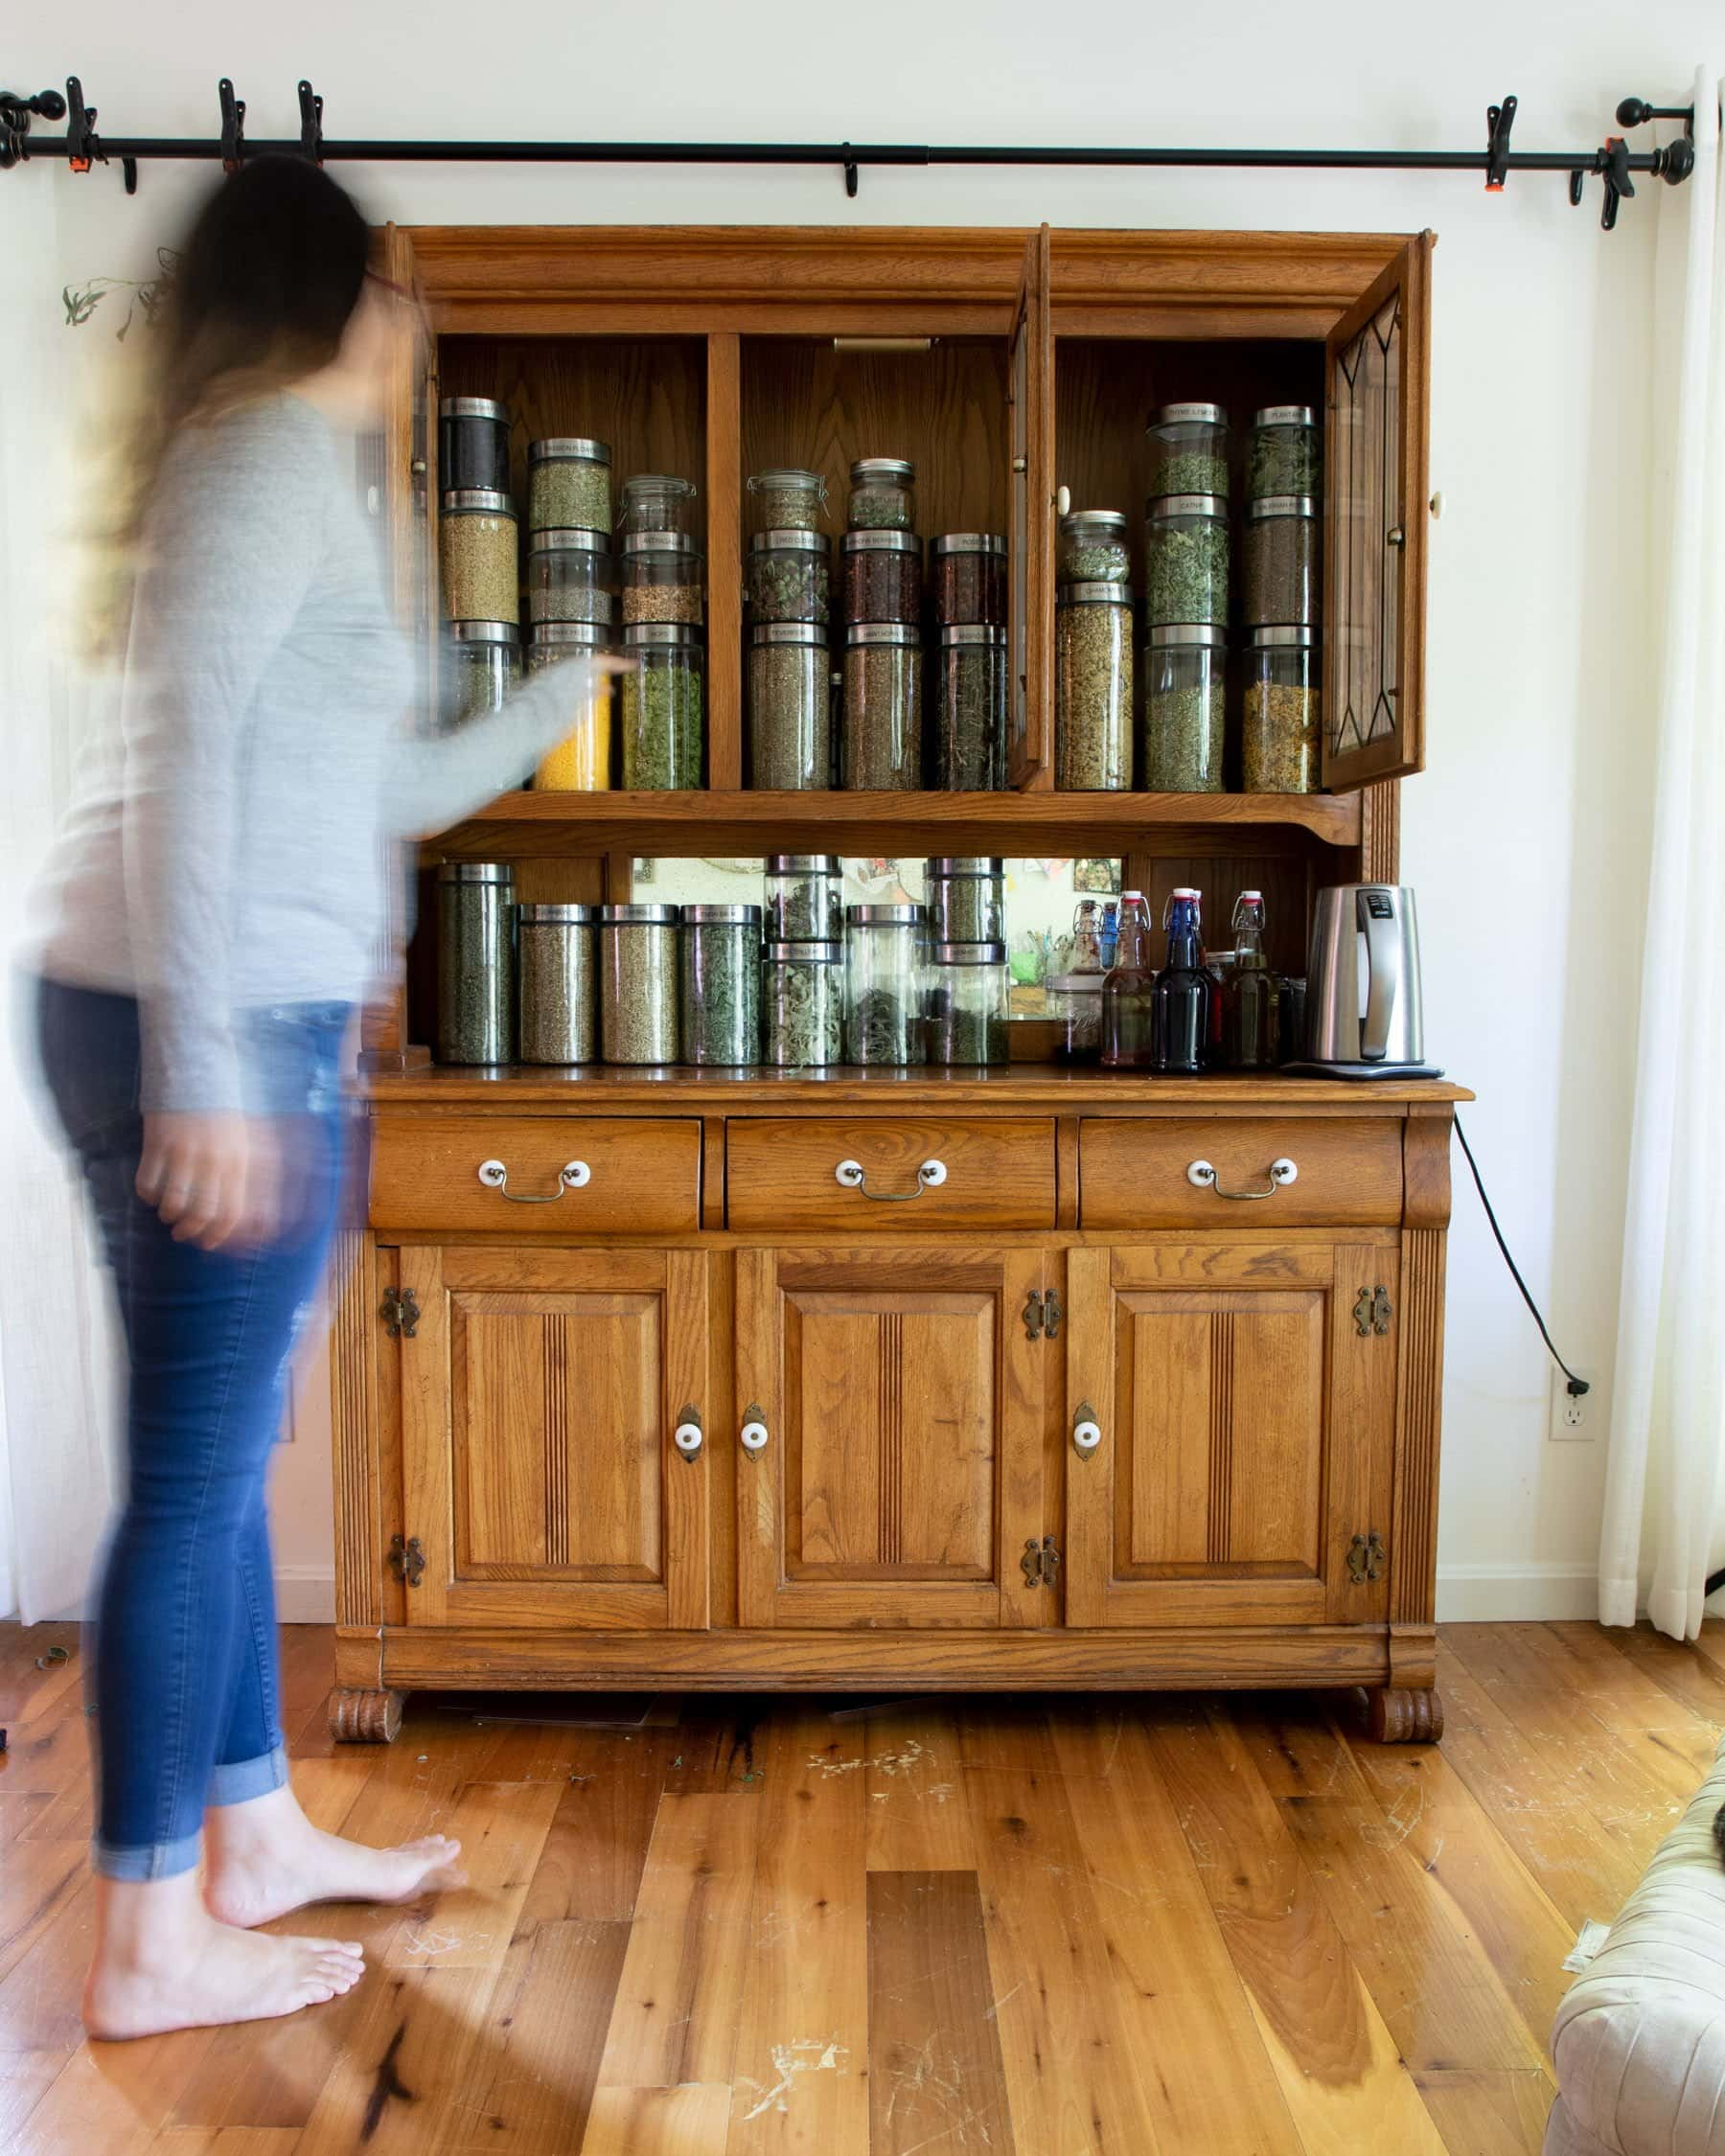 Blurred woman walking up to a wooden apothecary cabinet full of medicinal herbs in glass jars